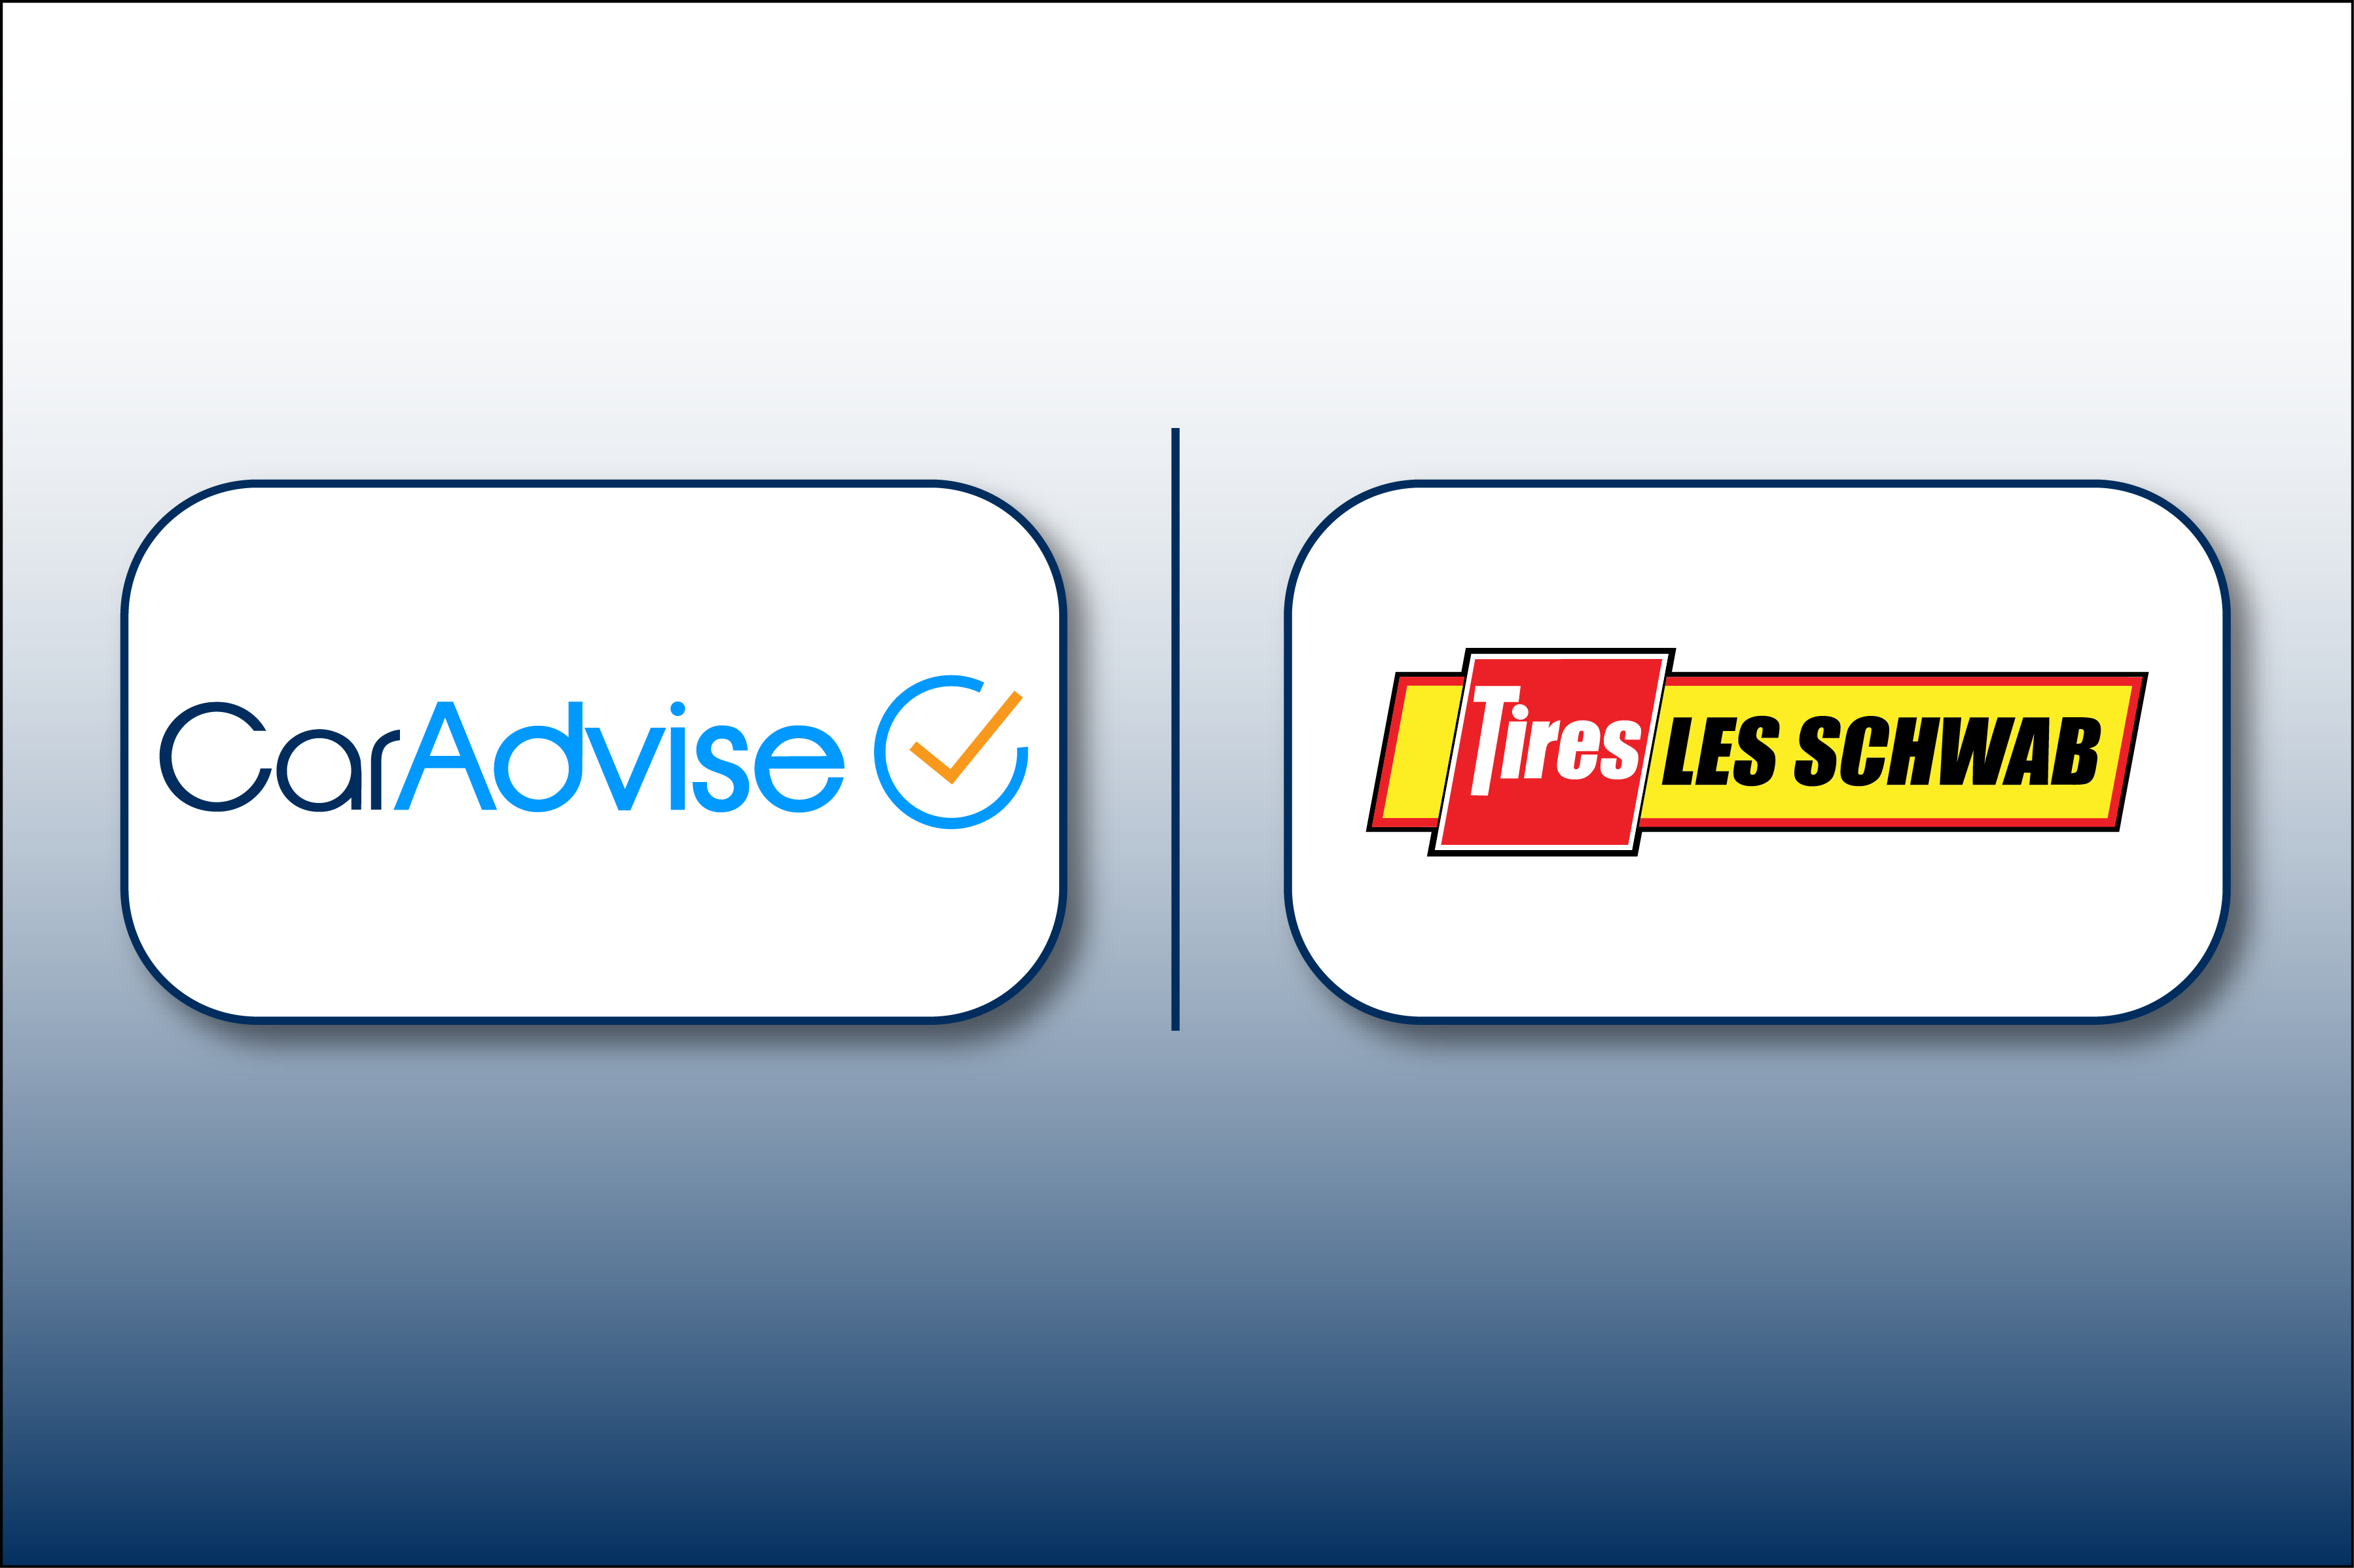 CarAdvise and Les Schwab Partner Up